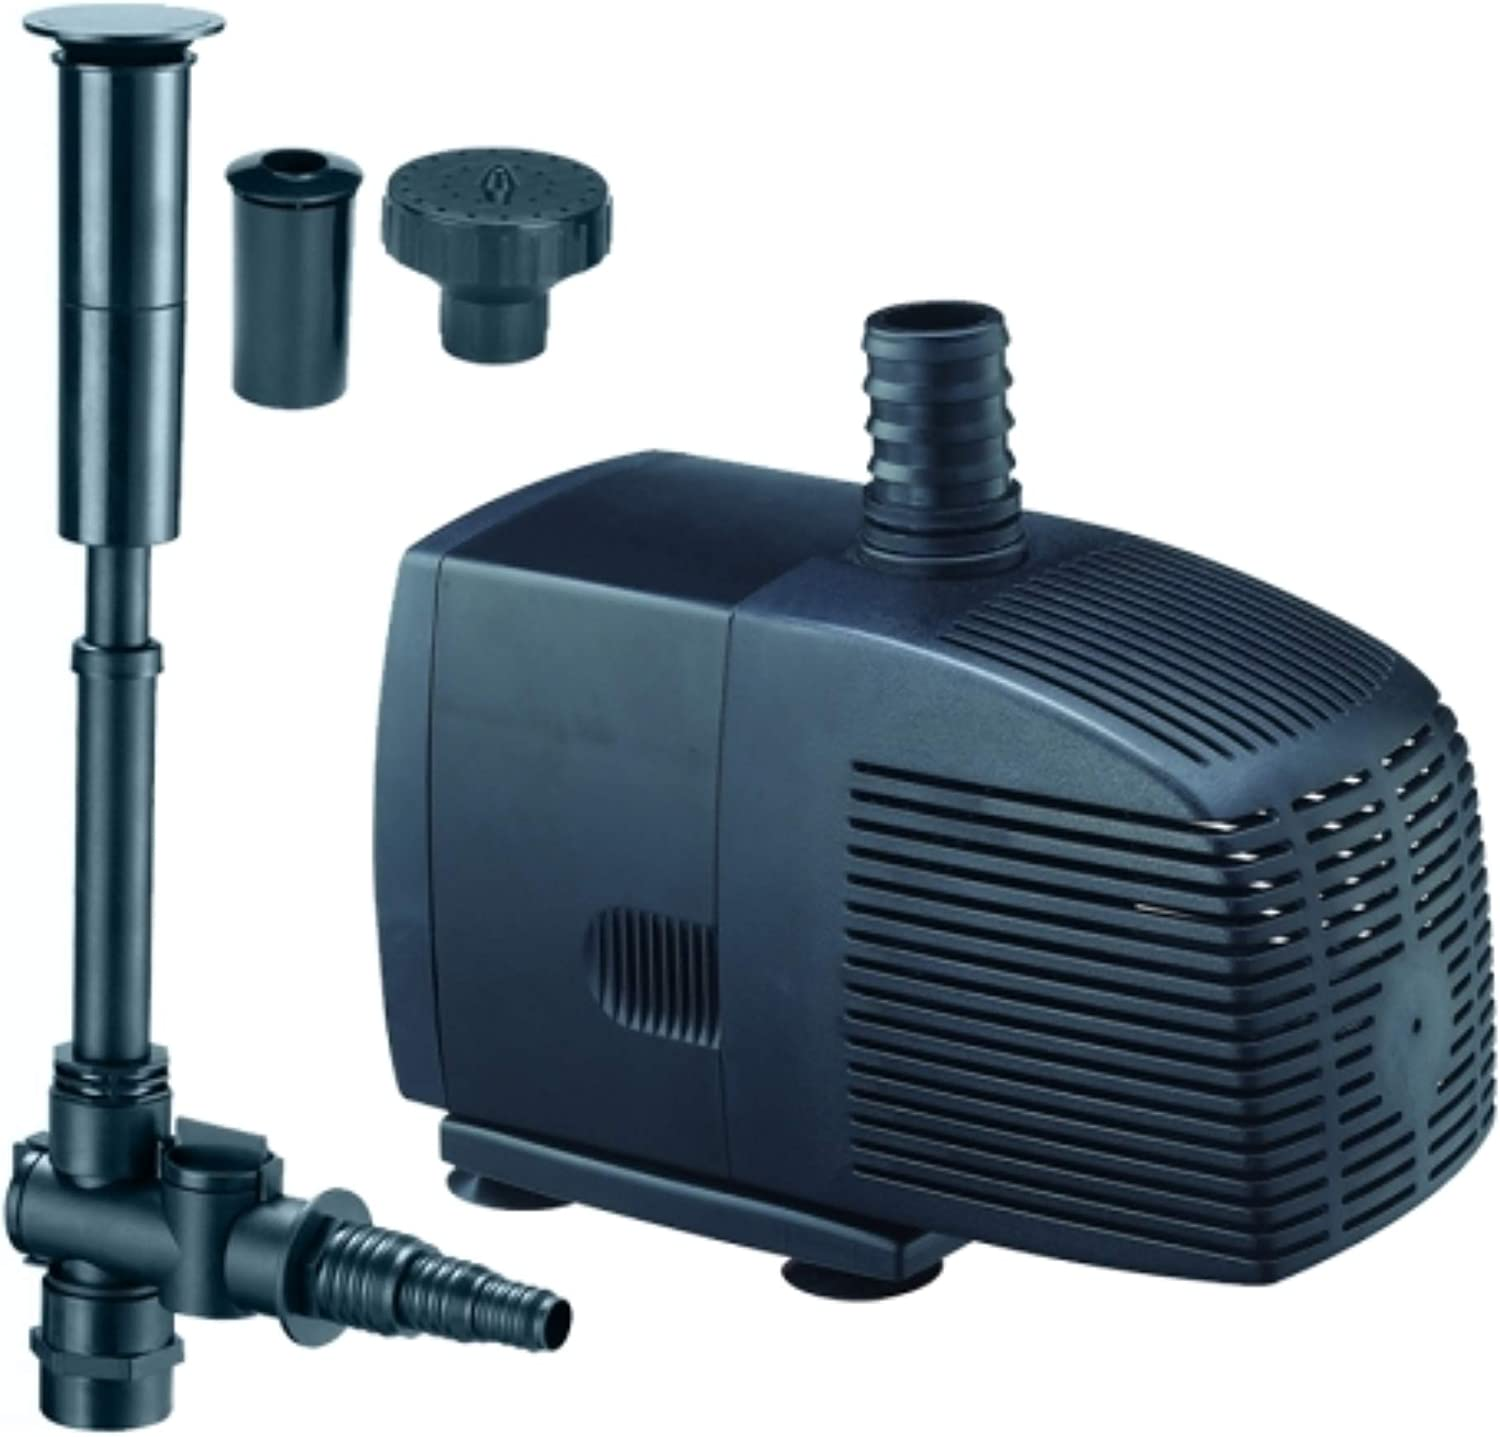 ANJON MANUFACTURING LF-350 Little Frog Pump Super Cheap mail order specialty store Special SALE held GPH 350 Fountain